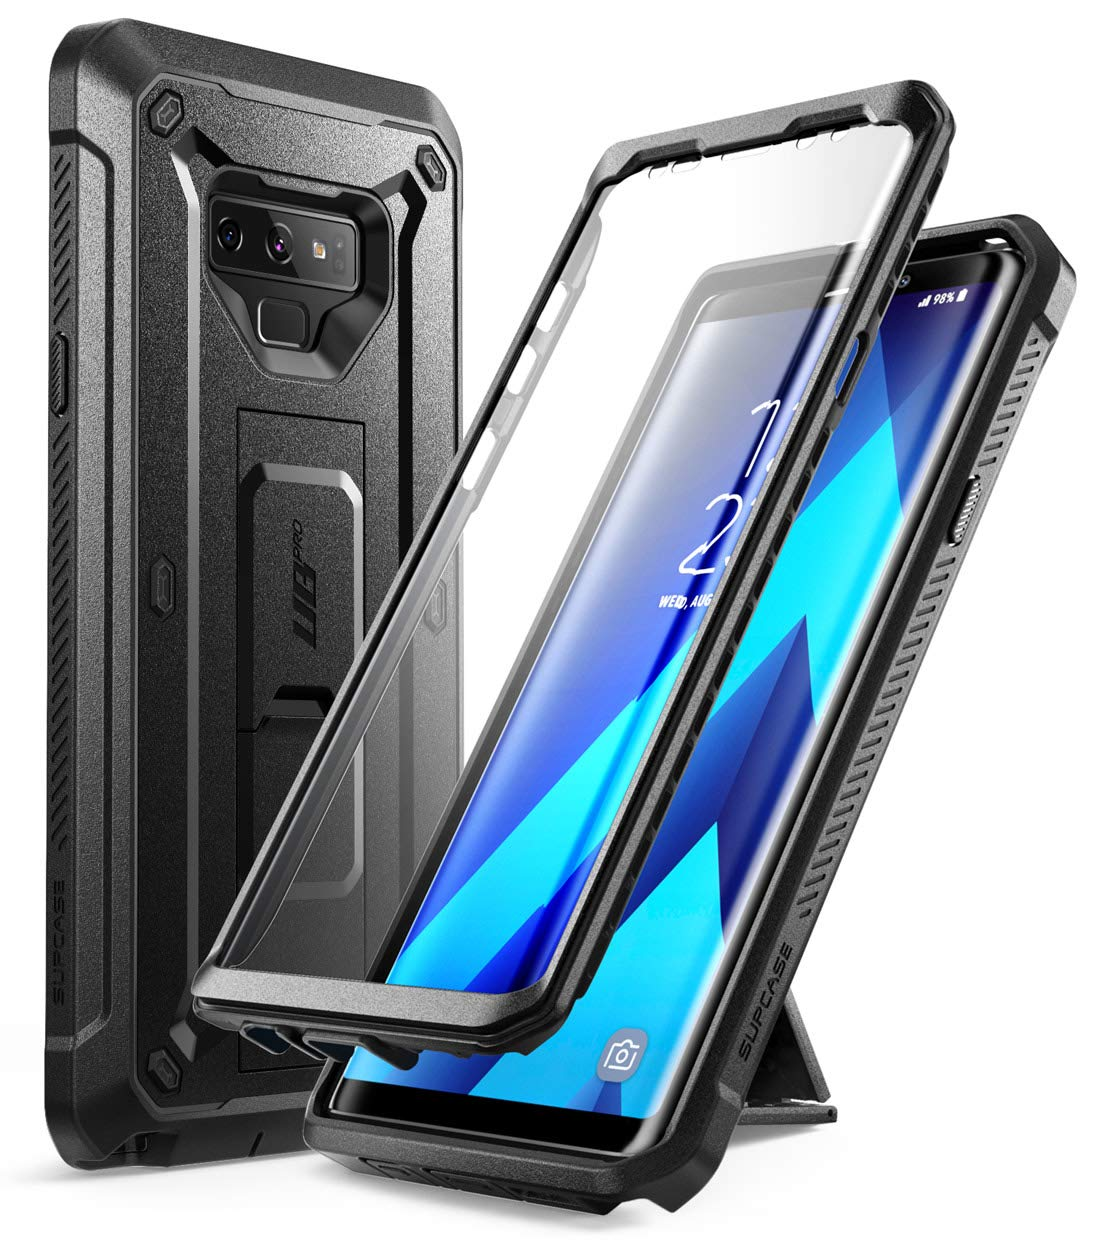 SUPCASE Unicorn Beetle Pro Series Design for Samsung Galaxy Note 9 Case,  with Built-in Screen Protector & Kickstand Full-Body Rugged Holster Case  for